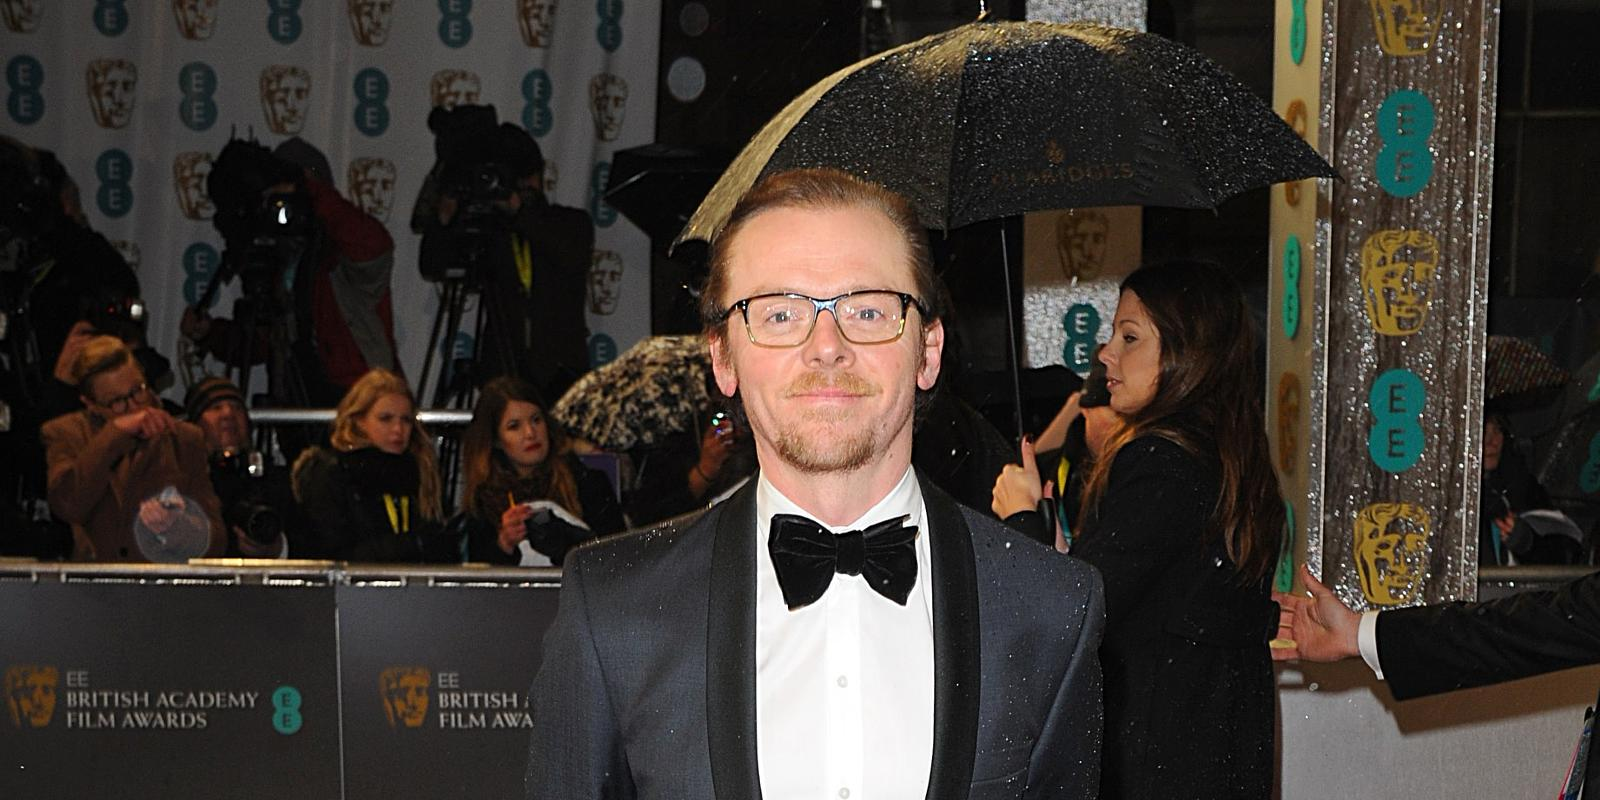 peggs divorced singles From spaced to star trek by way of star wars, simon pegg has become  by it  at more or less exactly the same moment his parents divorced  used to share a  single bed that was repeated in every feature from then on.